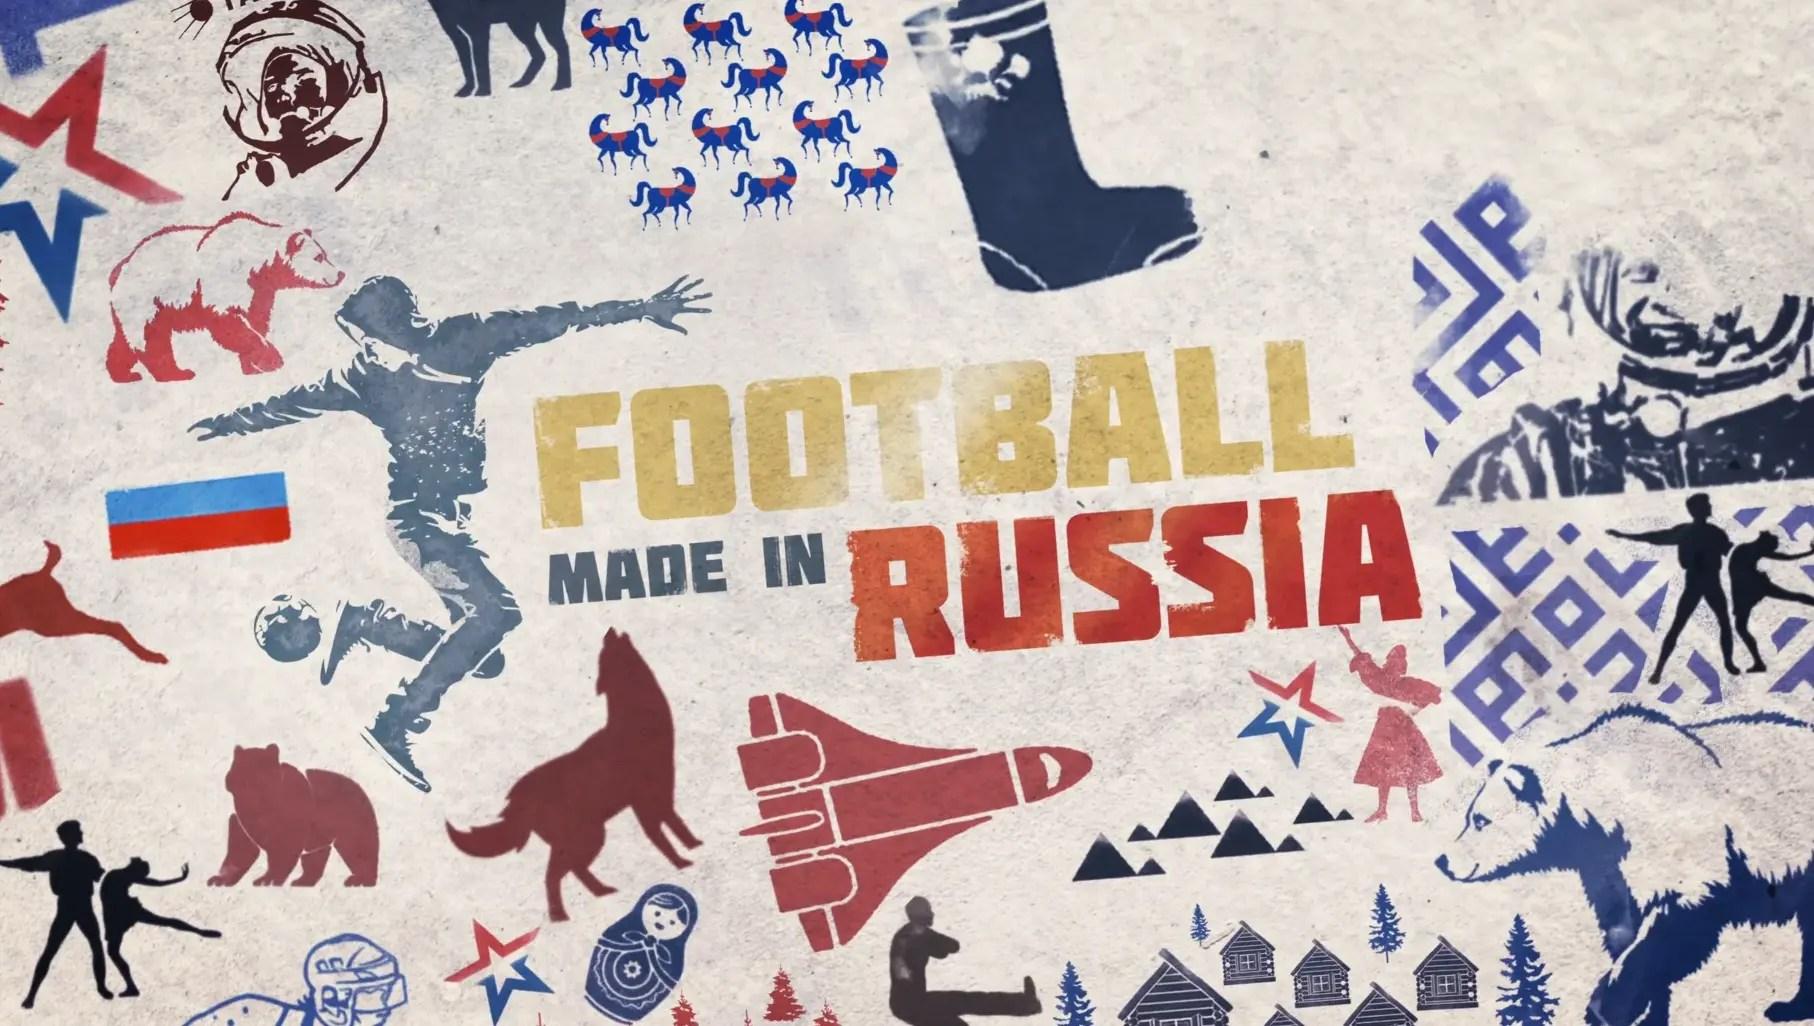 Football made in Russia music by Michel Duprez